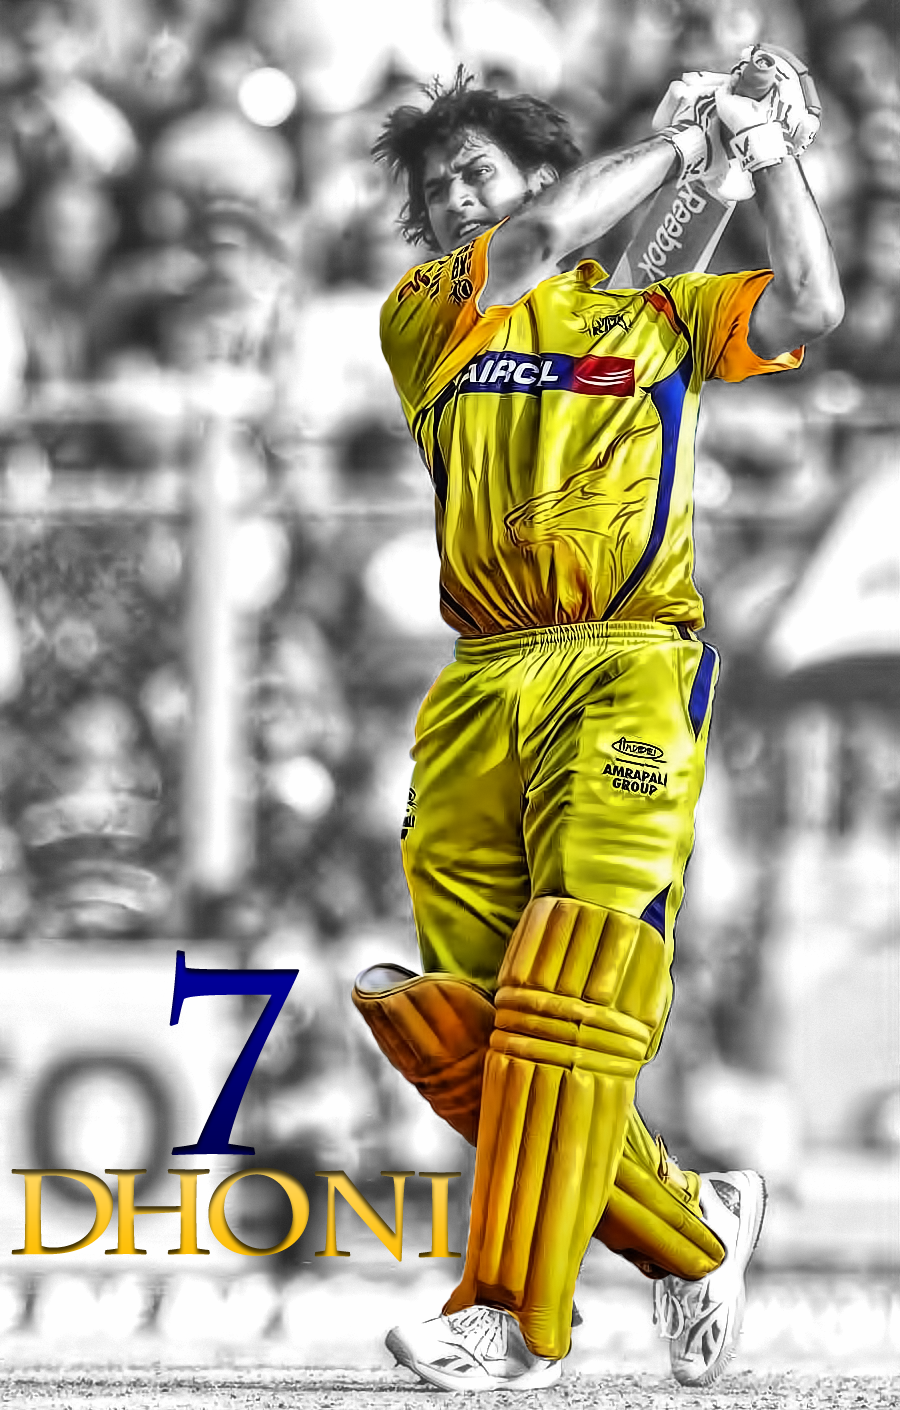 dhoni images in csk download - photo #19